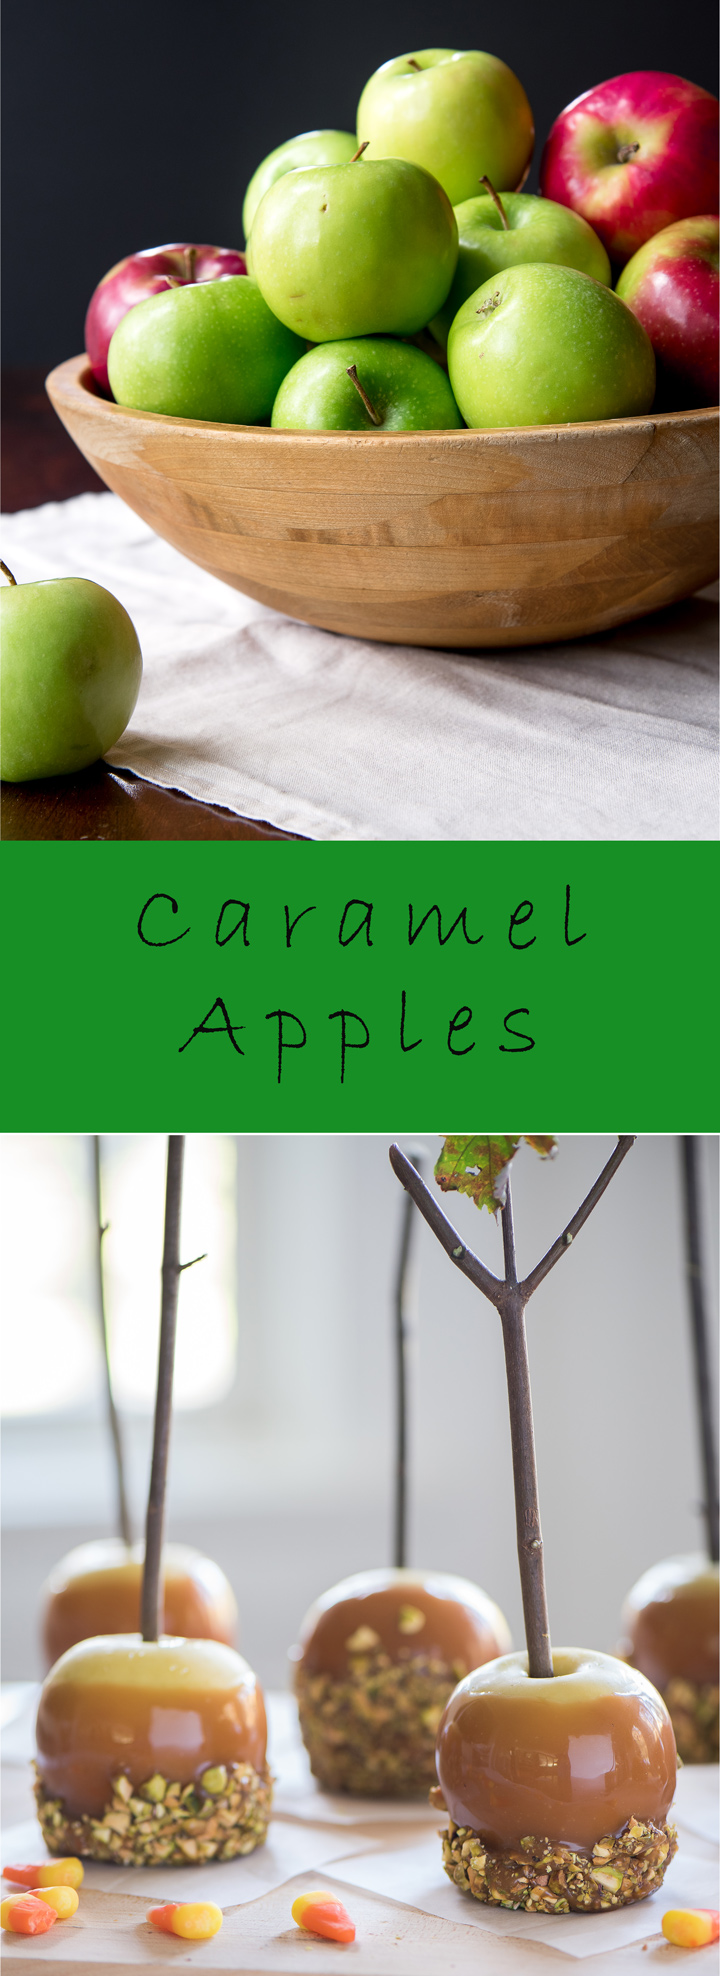 Classic Caramel Apples recipe. Recipe for caramel apples, a classic fall and Halloween treat. In this recipe there are two methods available to make the caramel for the apples. One is homemade and one is semi-homemade using soft caramel candies.